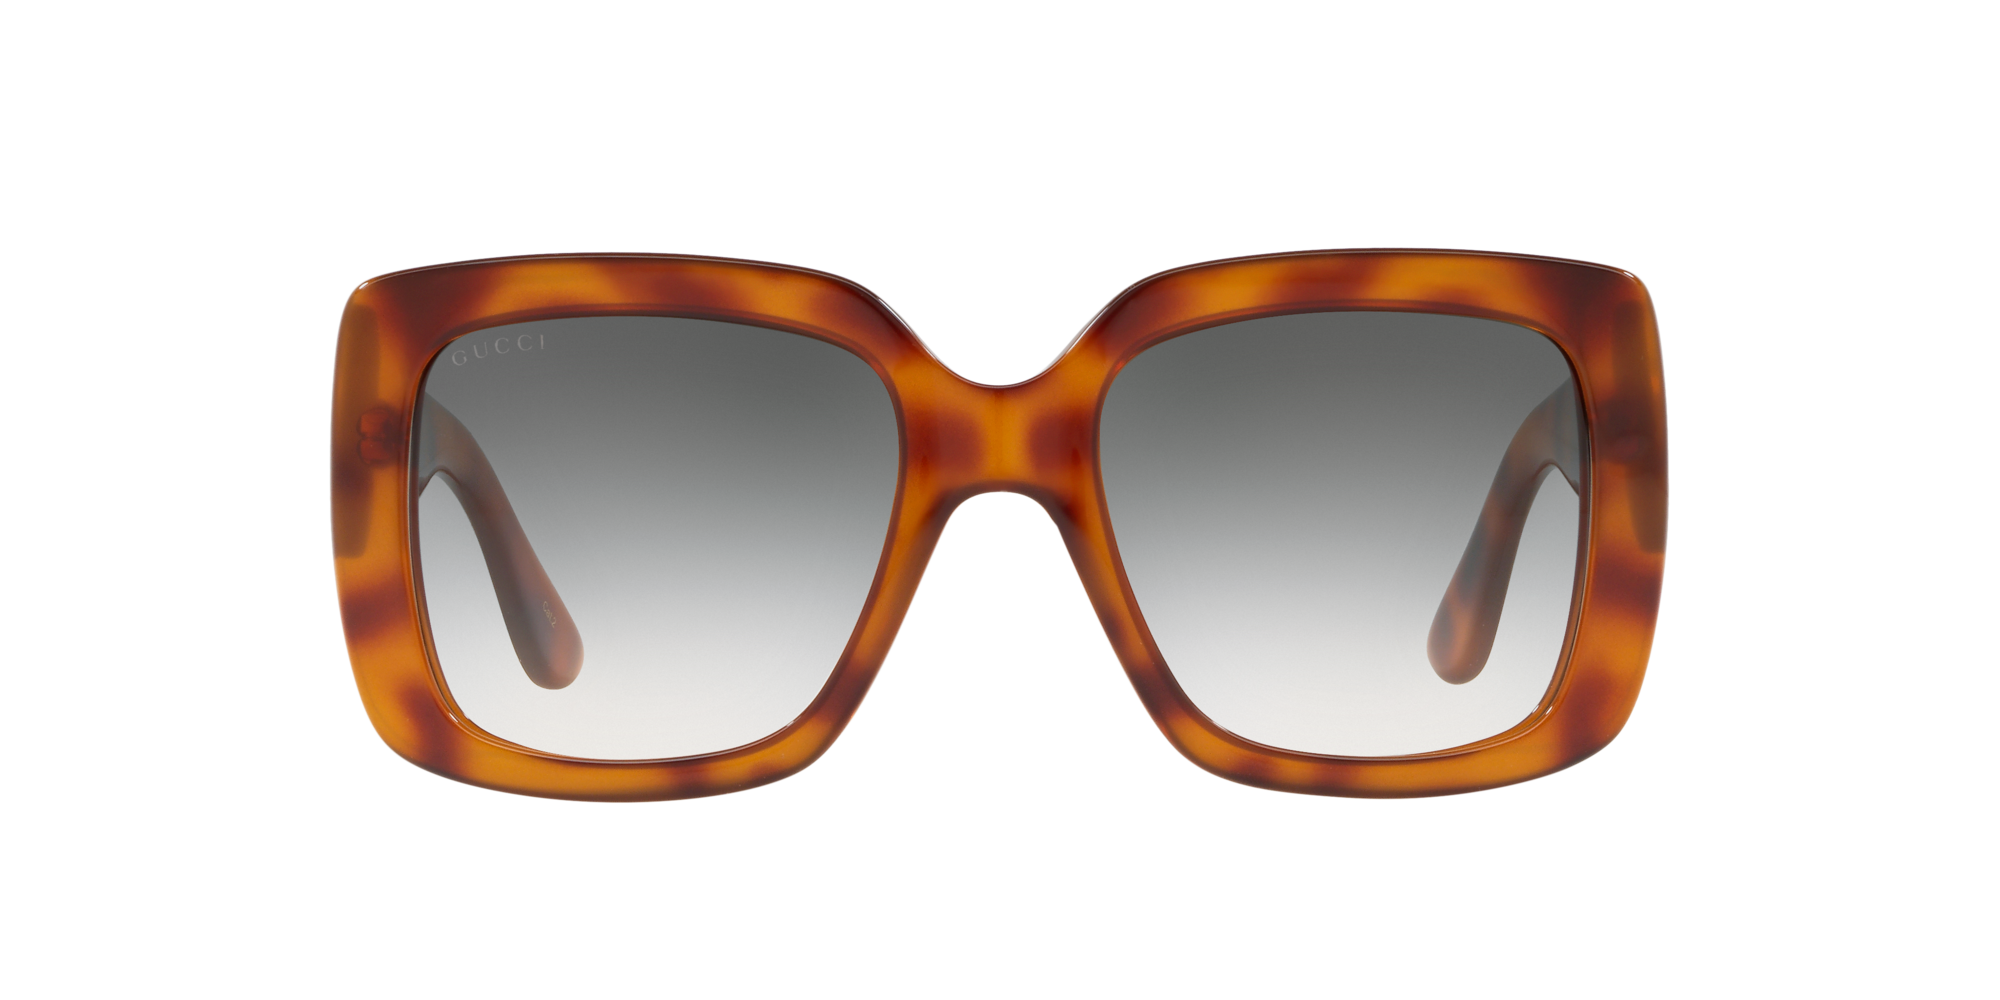 Image for GG0141S 53 from LensCrafters | Glasses, Prescription Glasses Online, Eyewear